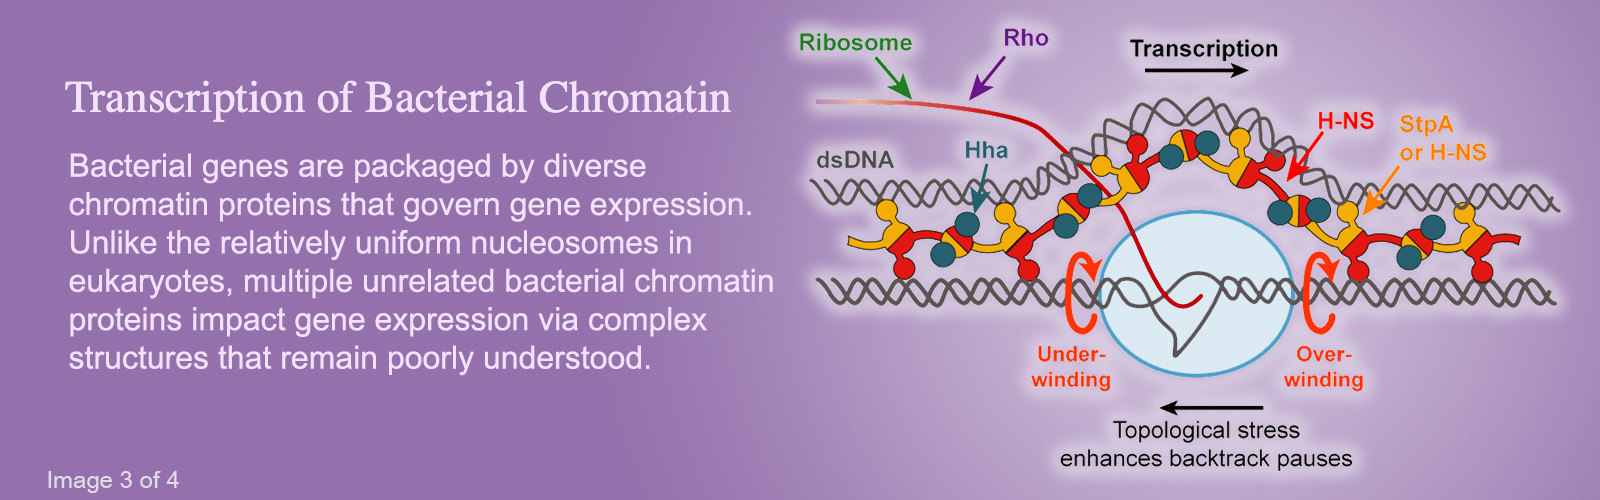 Hero image #3 featuring an illustration of chromatin, version with text that reads: Transcription of Bacterial Chromatin; Bacterial genes are packaged by diverse chromatin proteins that govern gene expression. Unlike the relatively uniform nucleosomes in eukaryotes, multiple unrelated bacterial chromatin proteins impact gene expression via complex structures that remain poorly understood.